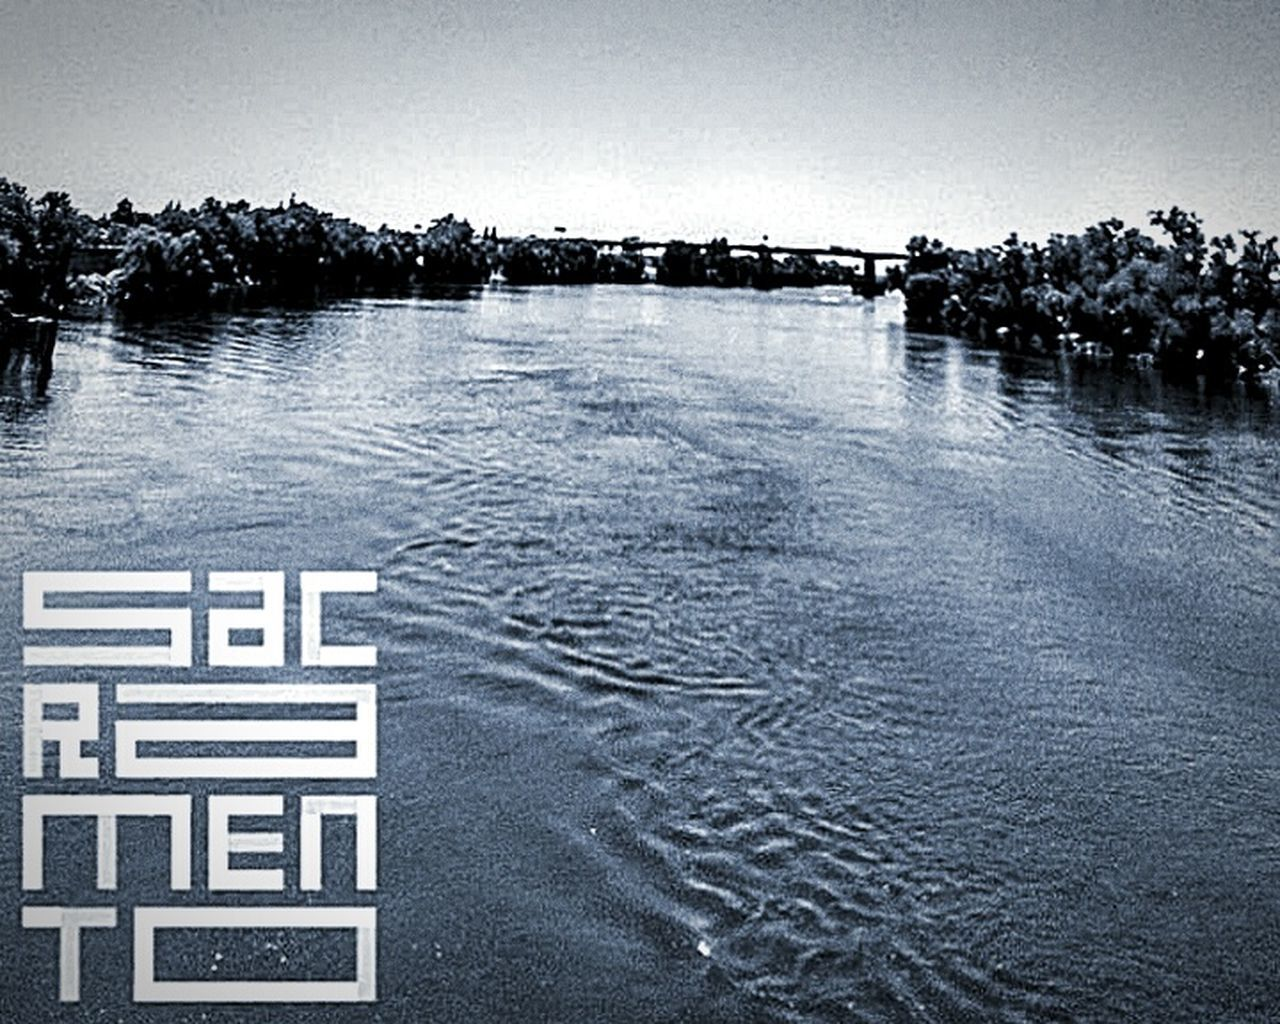 Sacramento, California Taking Photos ❤ Editing Photos This Week On Eyeem My Photography. ❤ Trees And Sky Black And White Photography Eyeem Black & White Nature Photography No People EyeEm Best Edits Beauty In Nature EyeEm Nature Lover Tower Bridge Sacramento Eye4photography  Nature Photo Of The Day Hidden Gems  Sacramento River